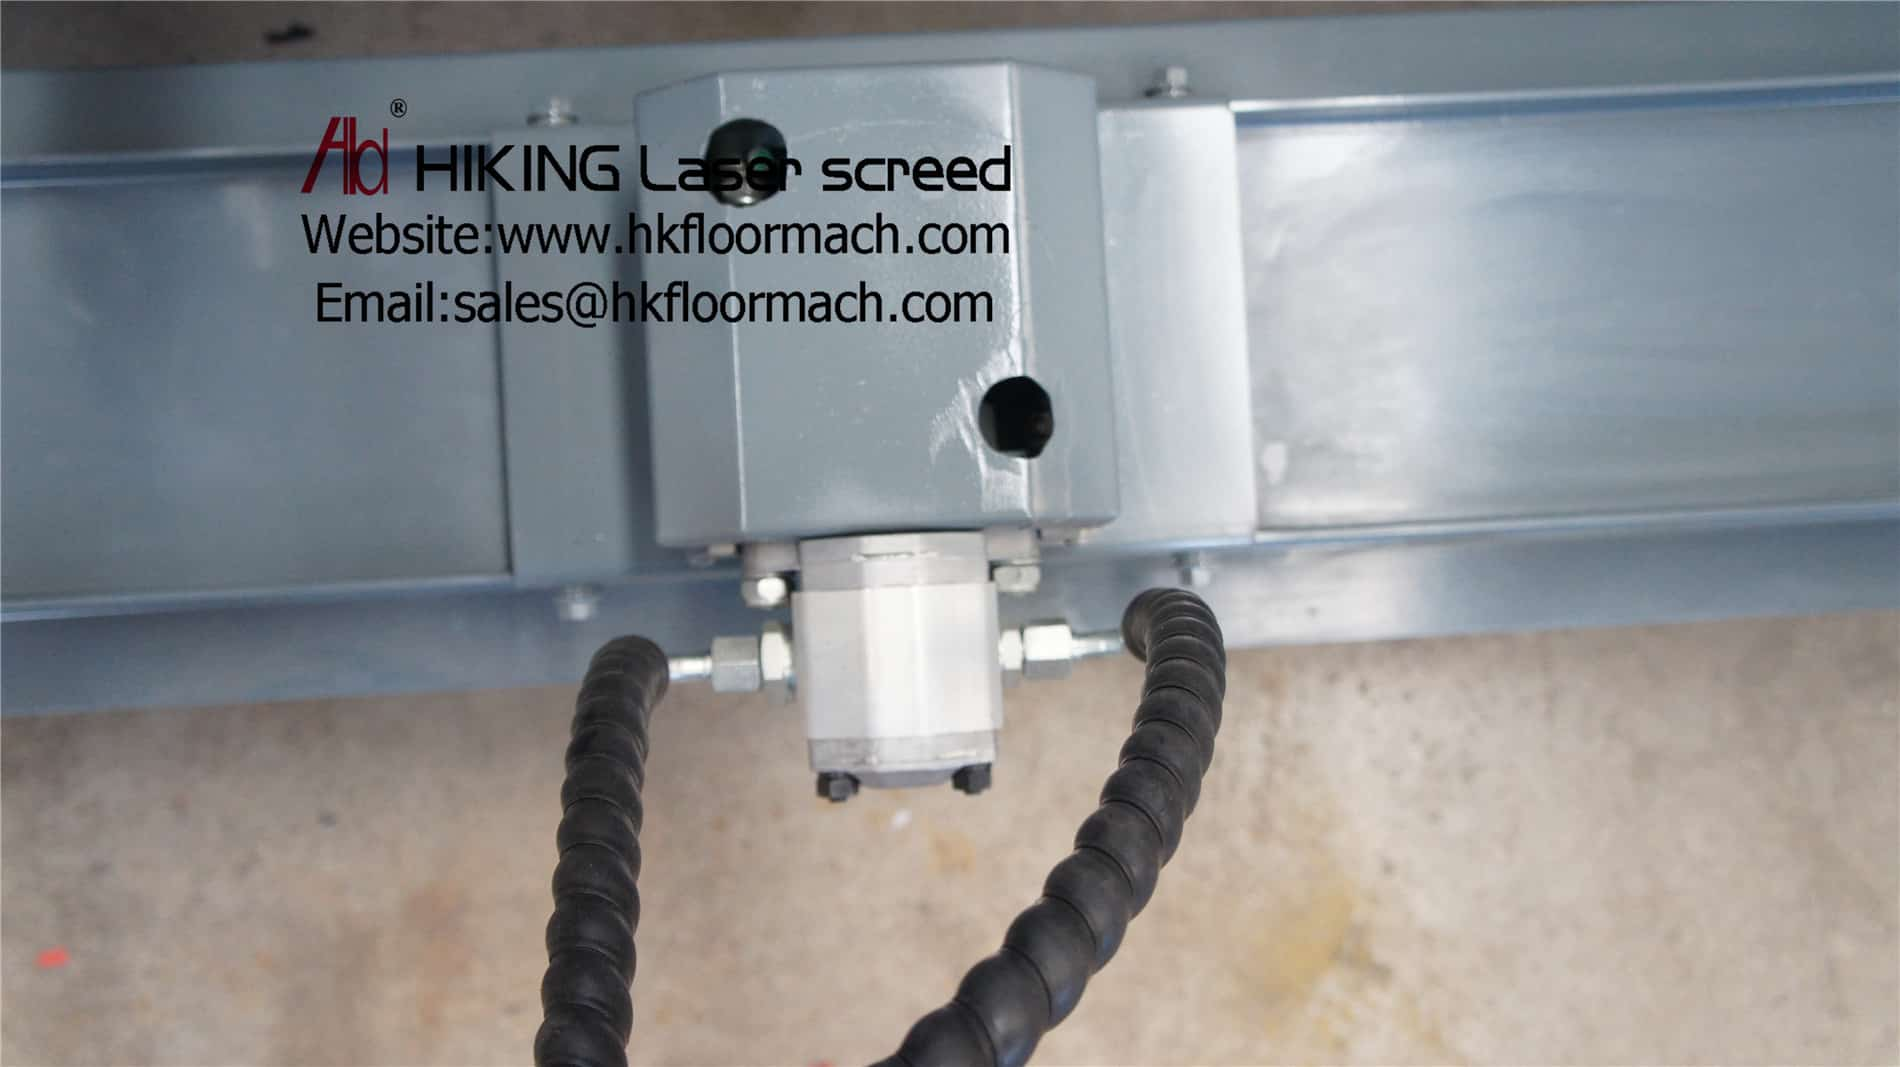 vibration motors of the concrete laser screed machine